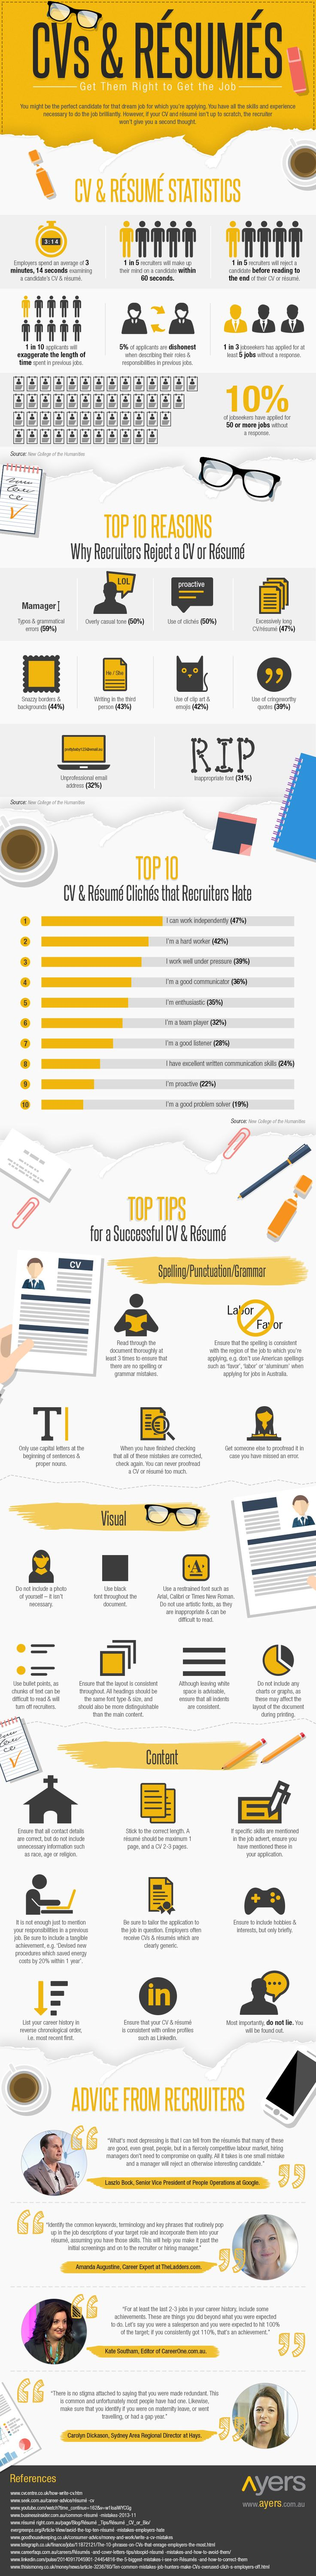 best ideas about resume help resume resume 17 best ideas about resume help resume resume writing and resume writing tips